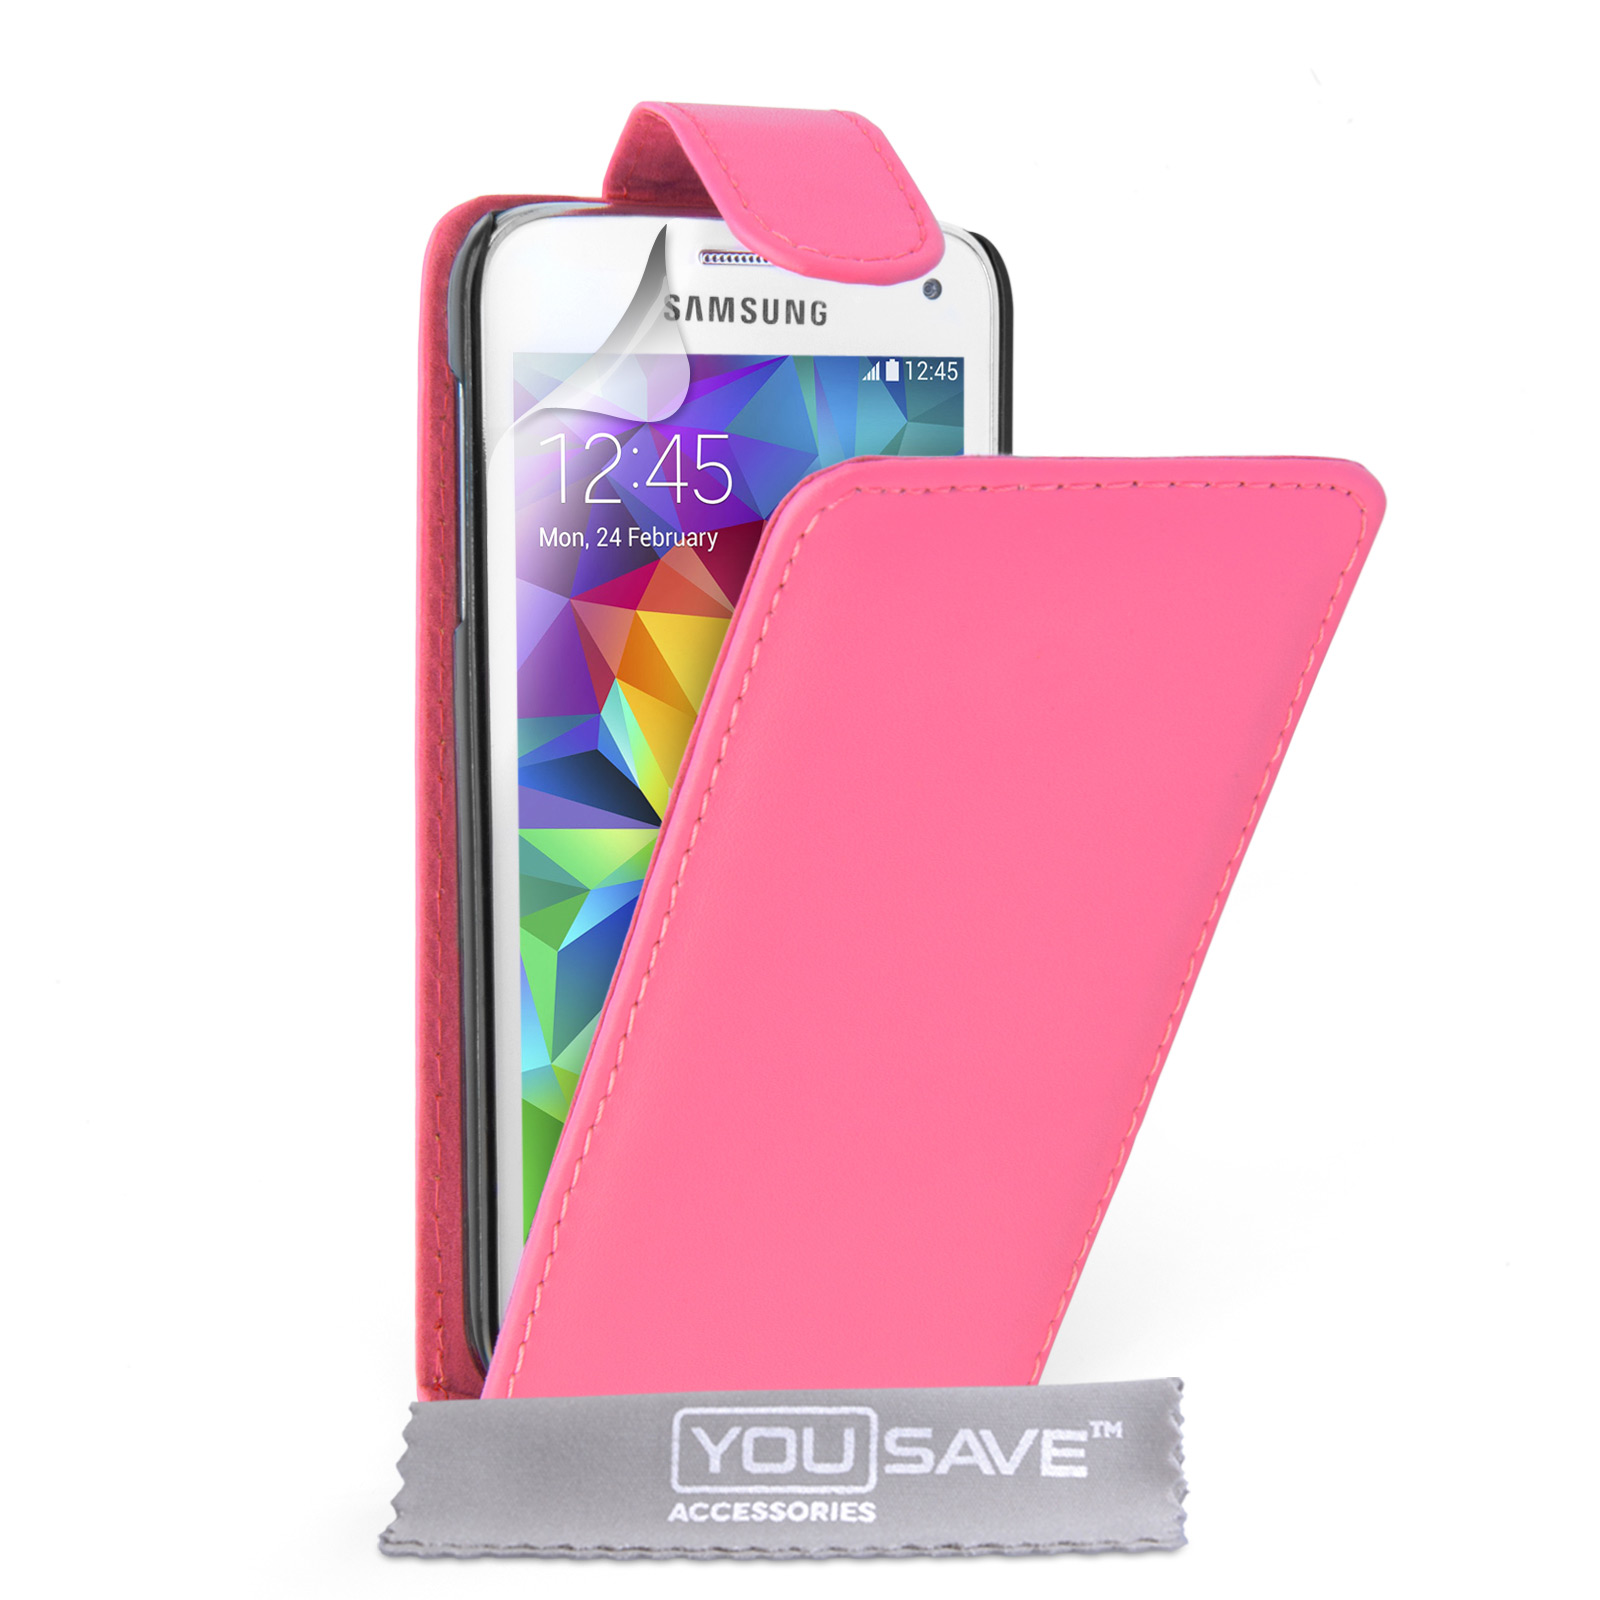 YouSave Samsung Galaxy S5 Mini Leather-Effect Flip Case - Hot Pink